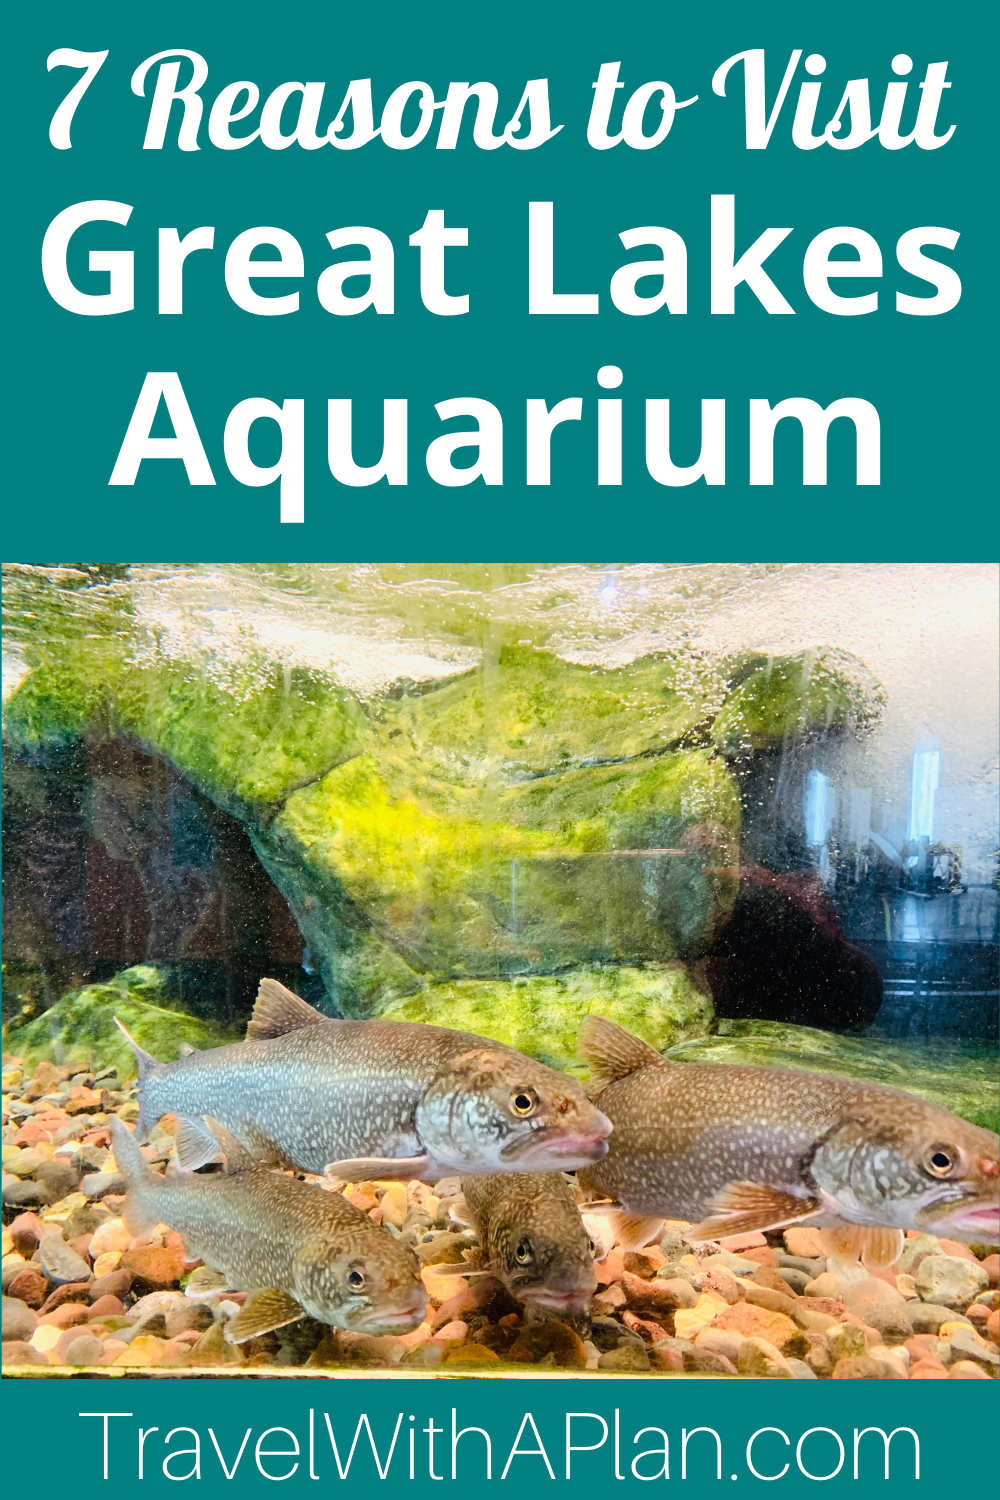 Click here to discover 7 awesome reasons to visit Duluth's Great Lakes Aquarium from Minnesota natives and Top US Family Travel Blog, Travel With A Plan!